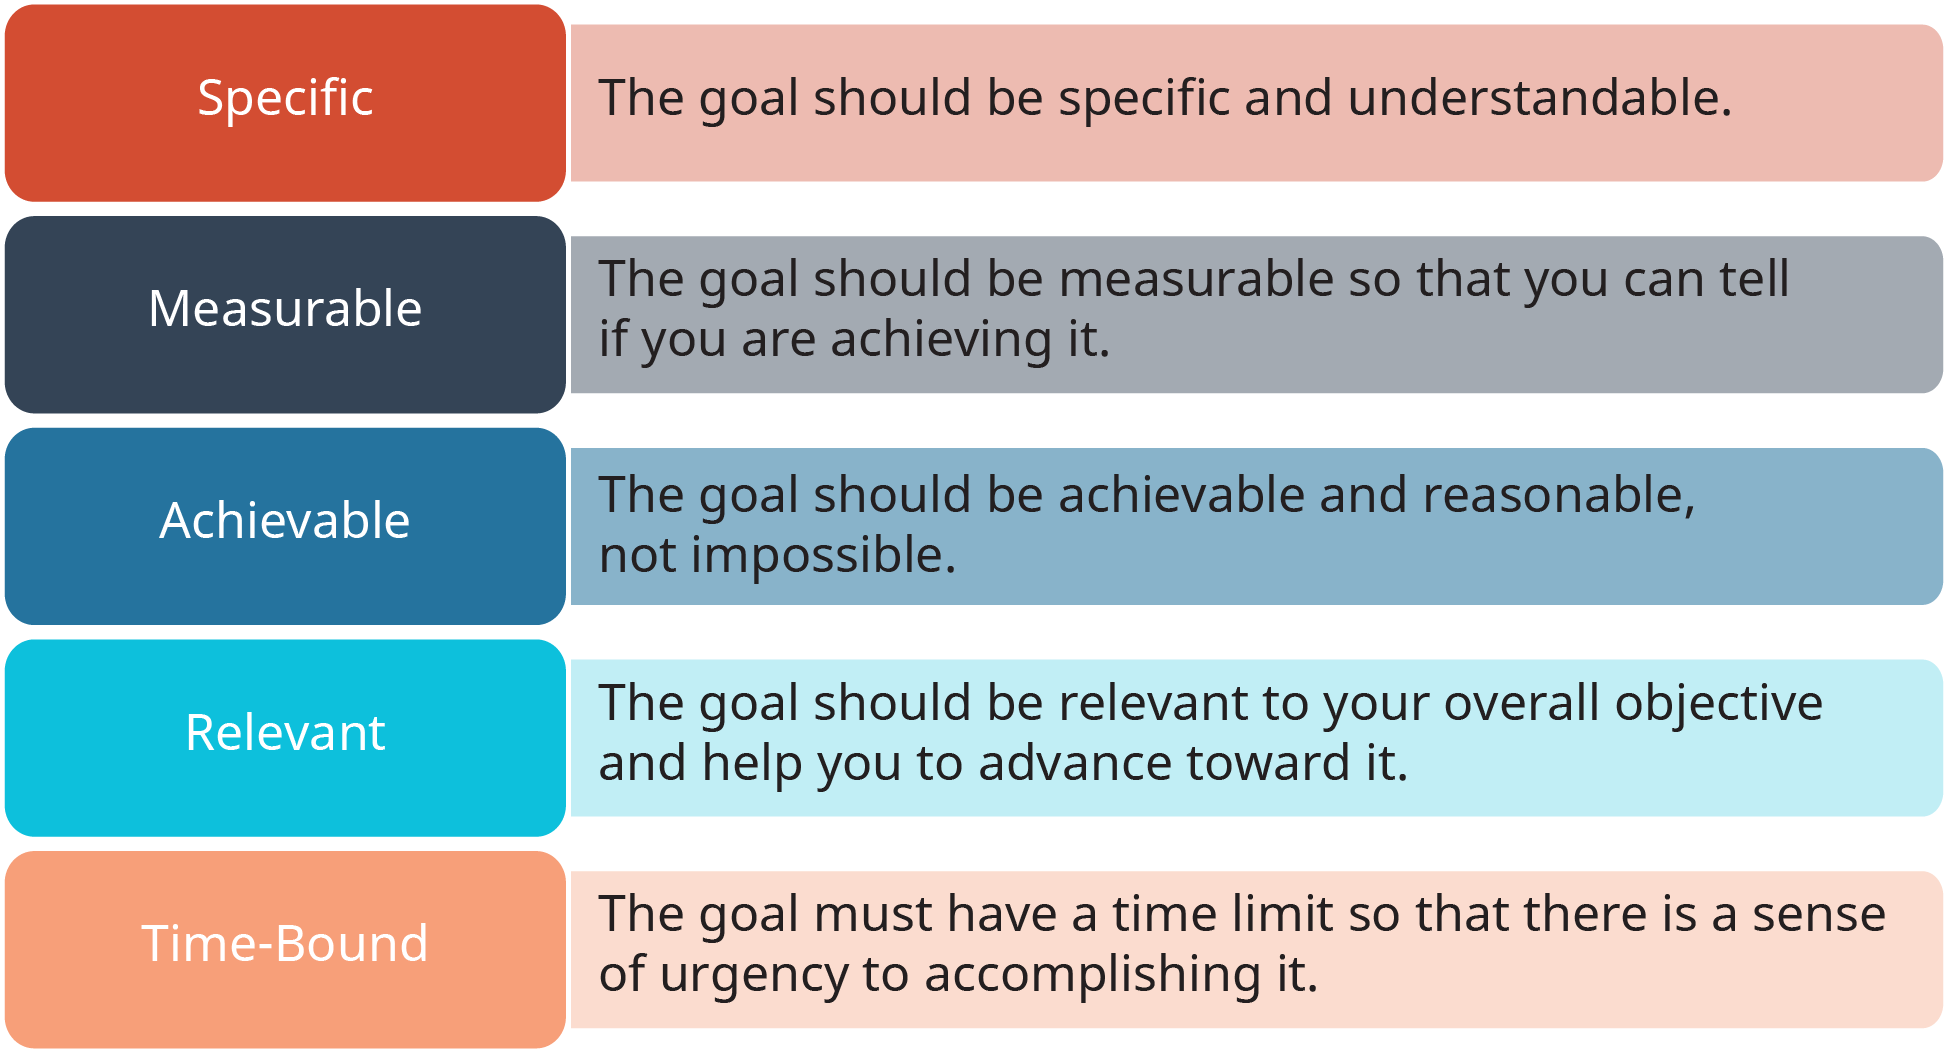 A diagram presents the SMART Framework for creating good goals.